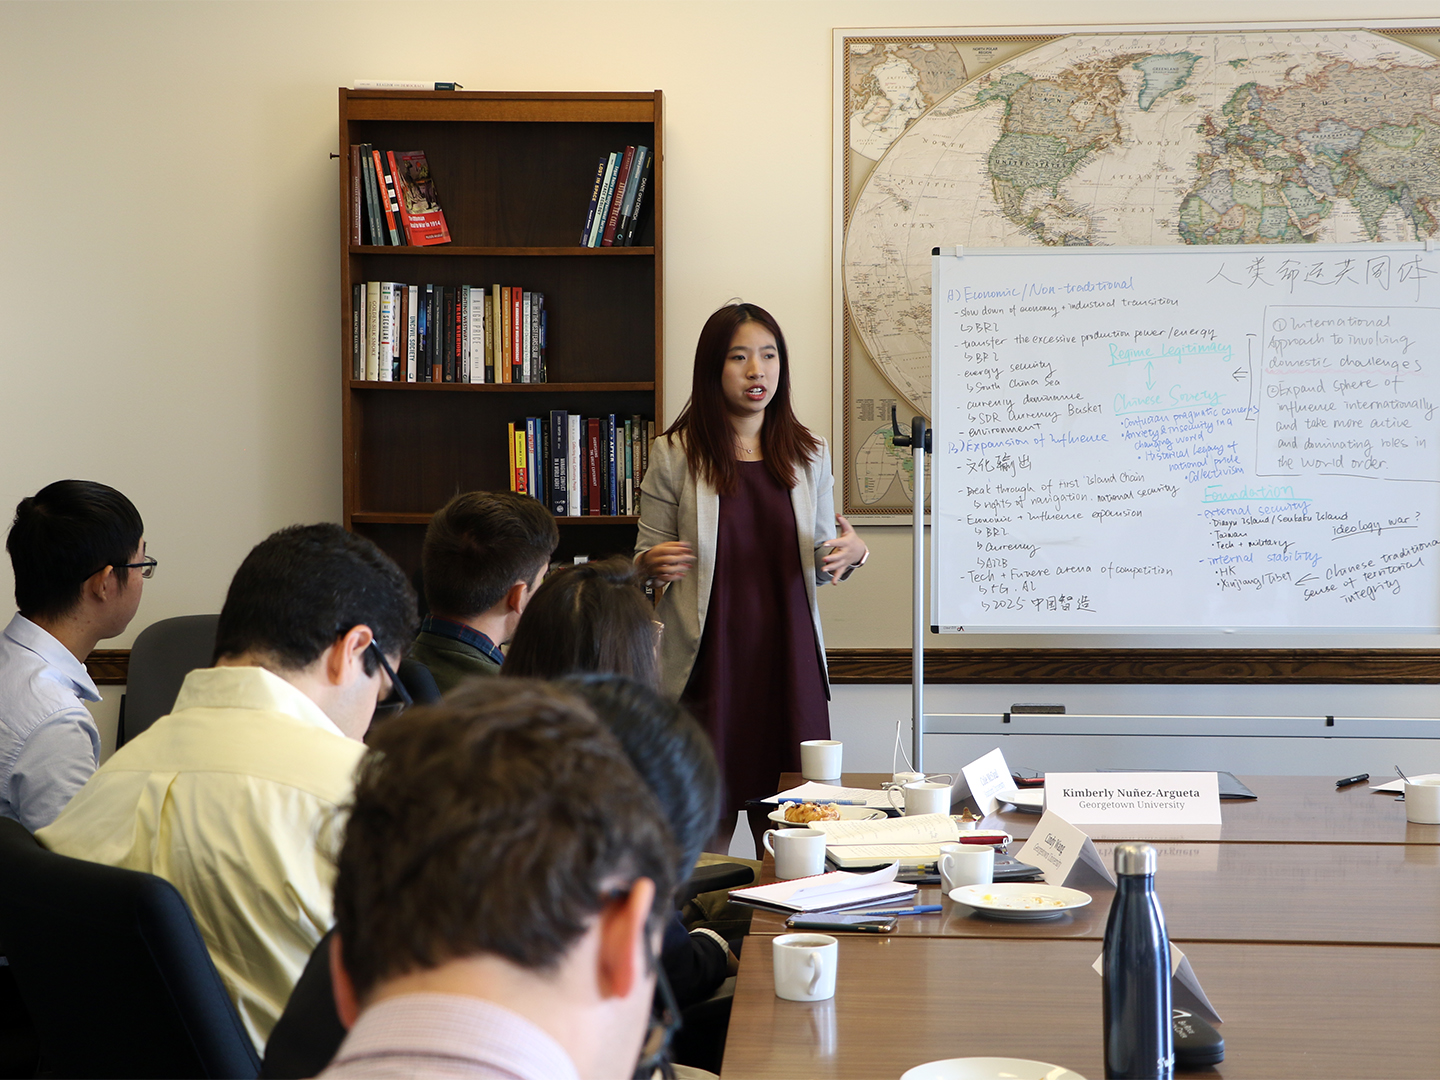 Student Fellow Cindy Wang discussing with the group